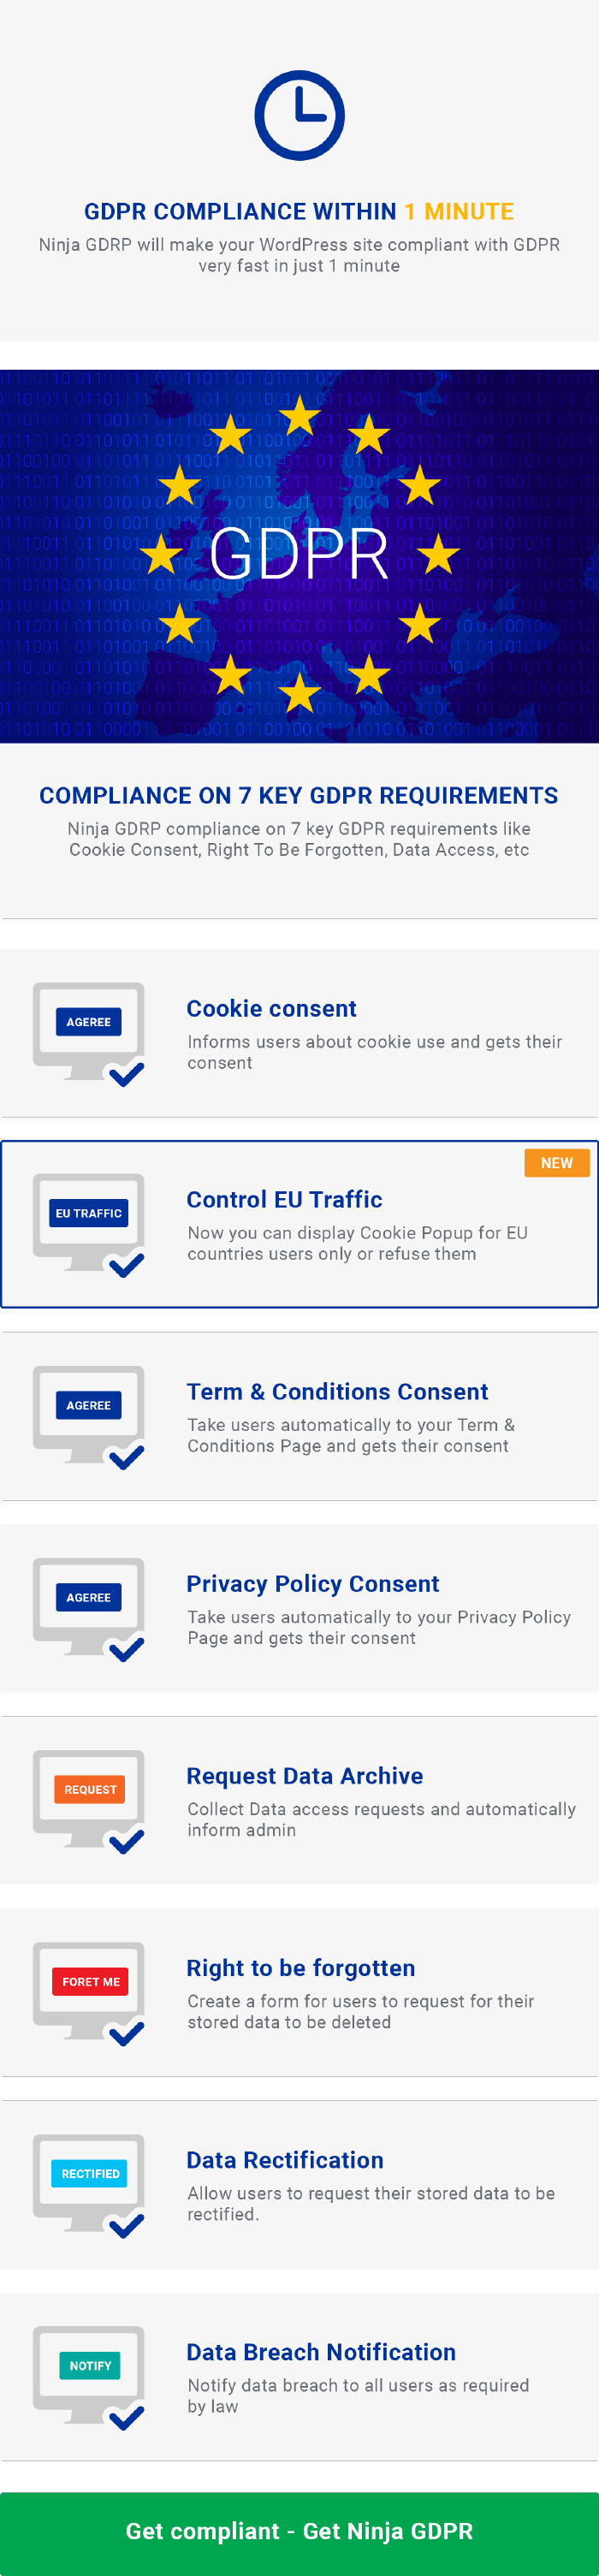 WordPress GDPR Compliance 2019 - 4